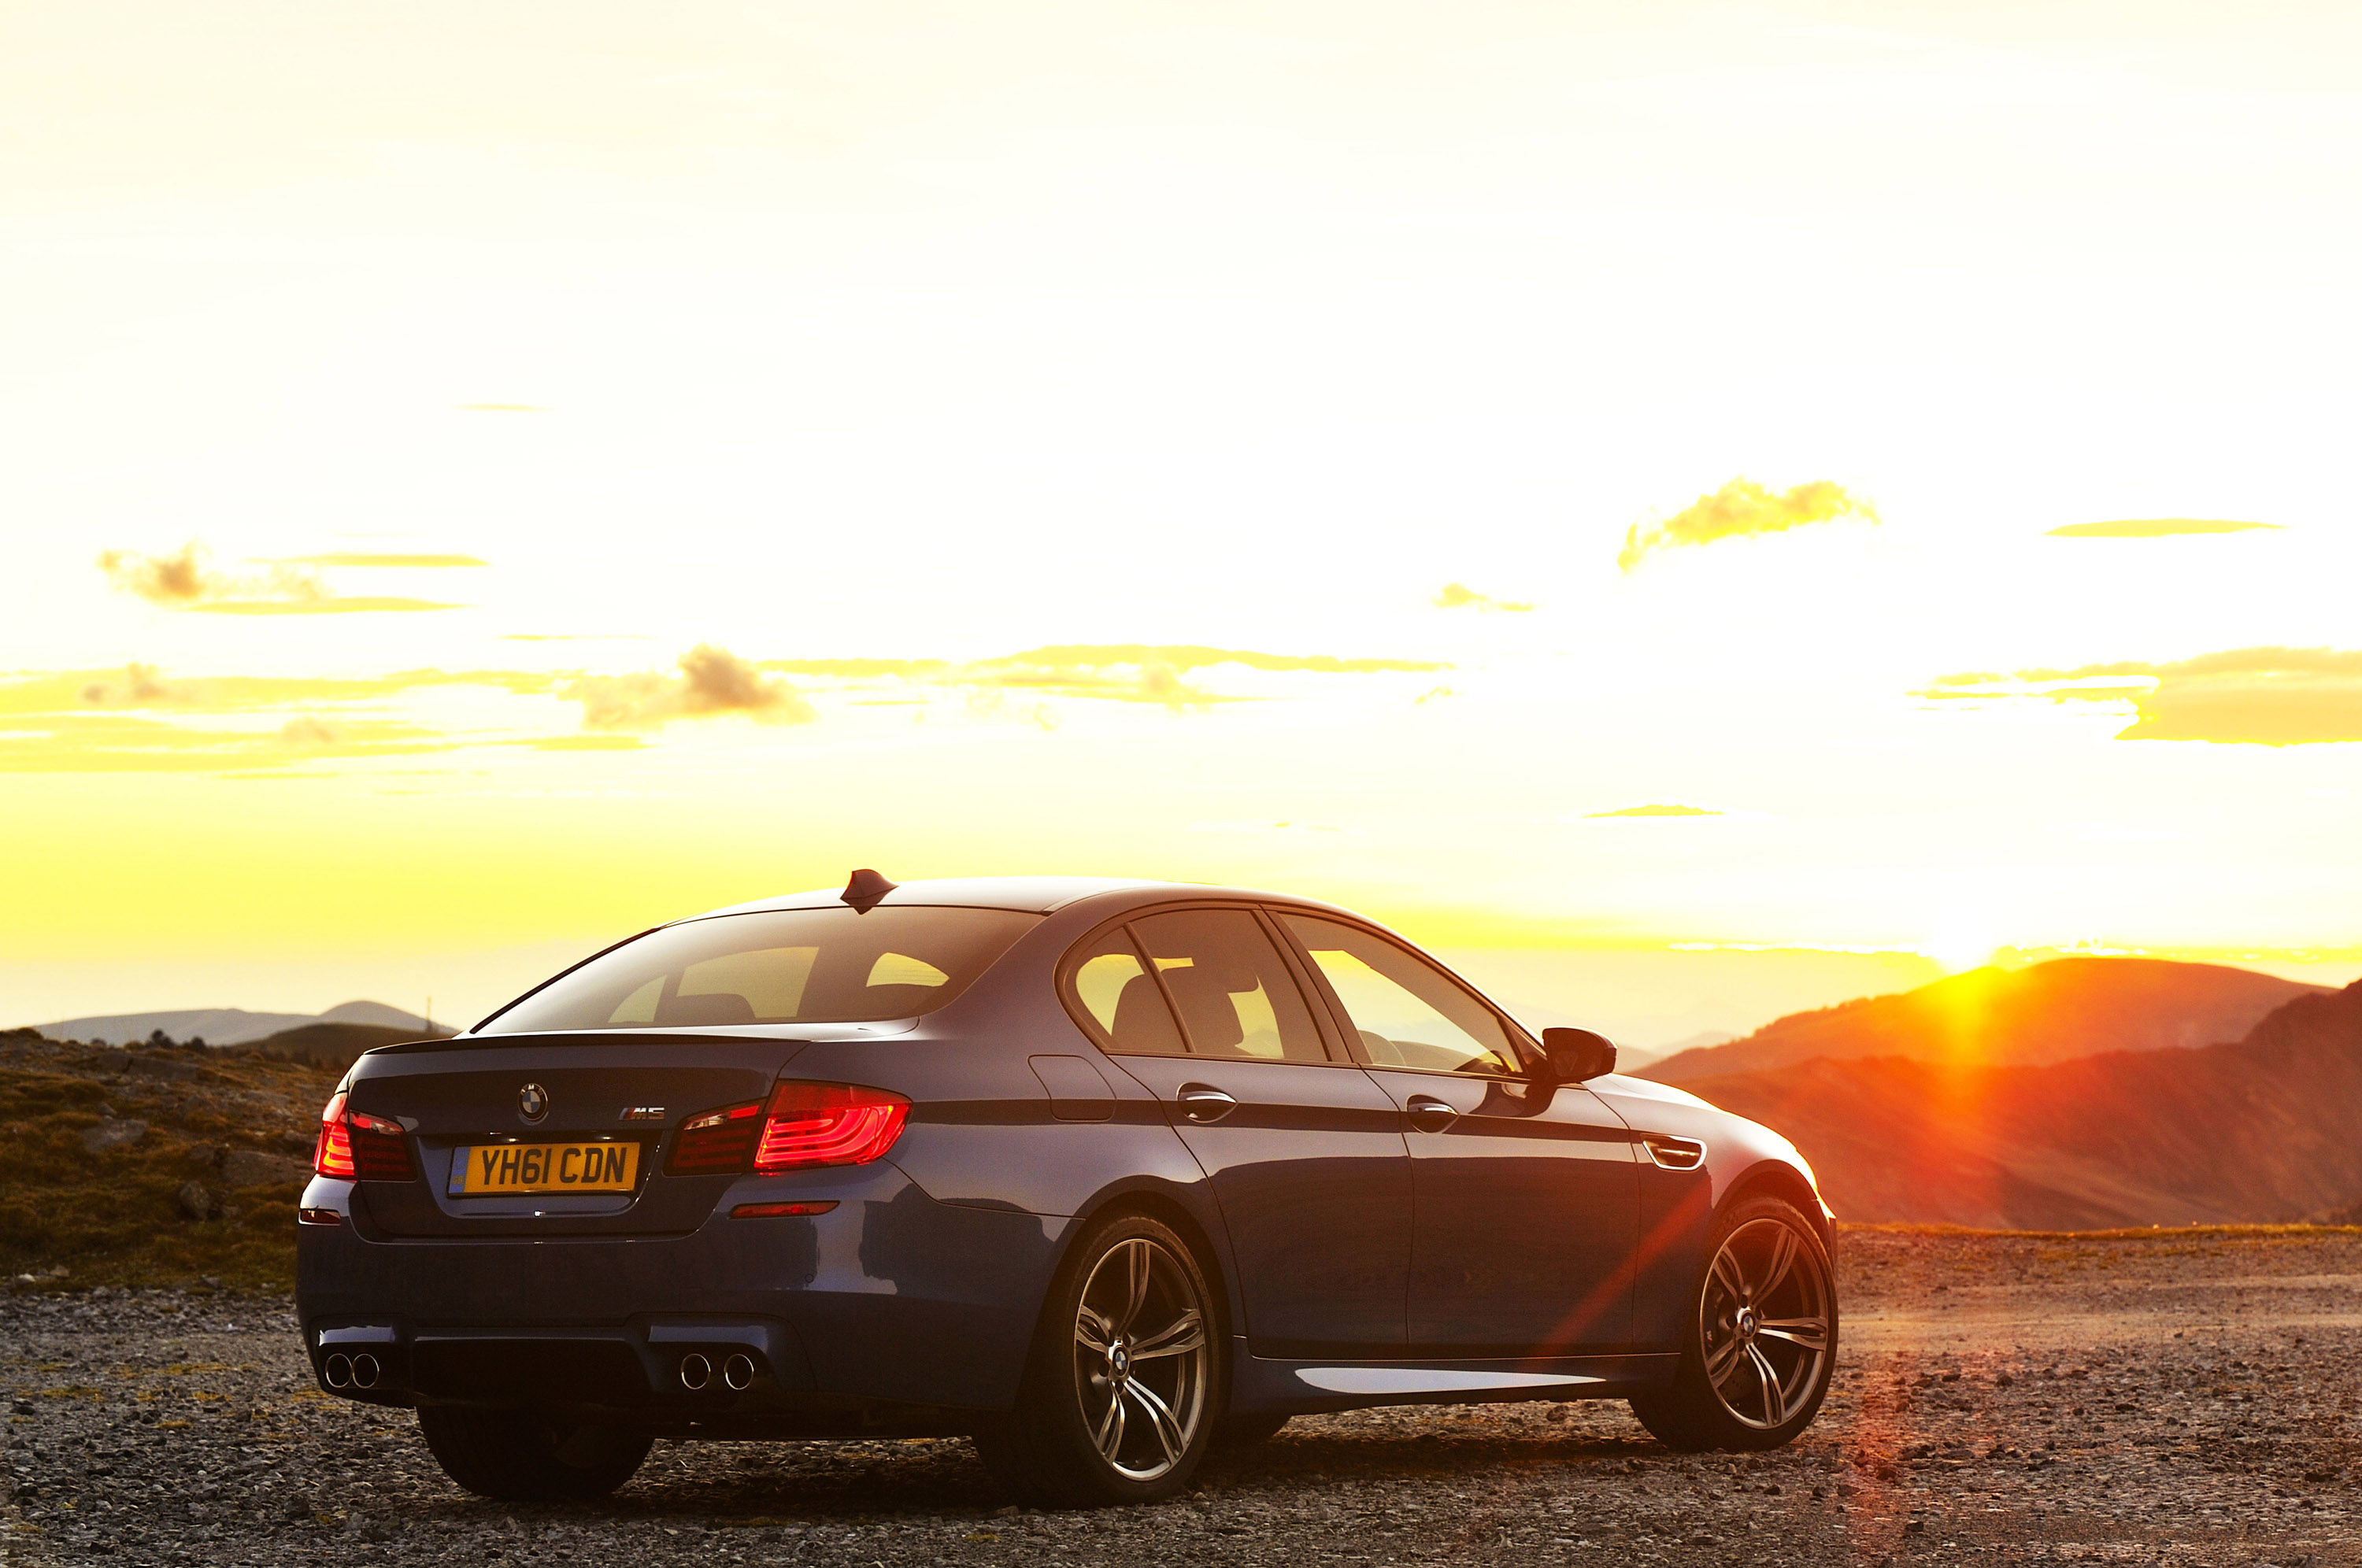 2012 BMW F10 M5 Saloon UK - Picture 60723